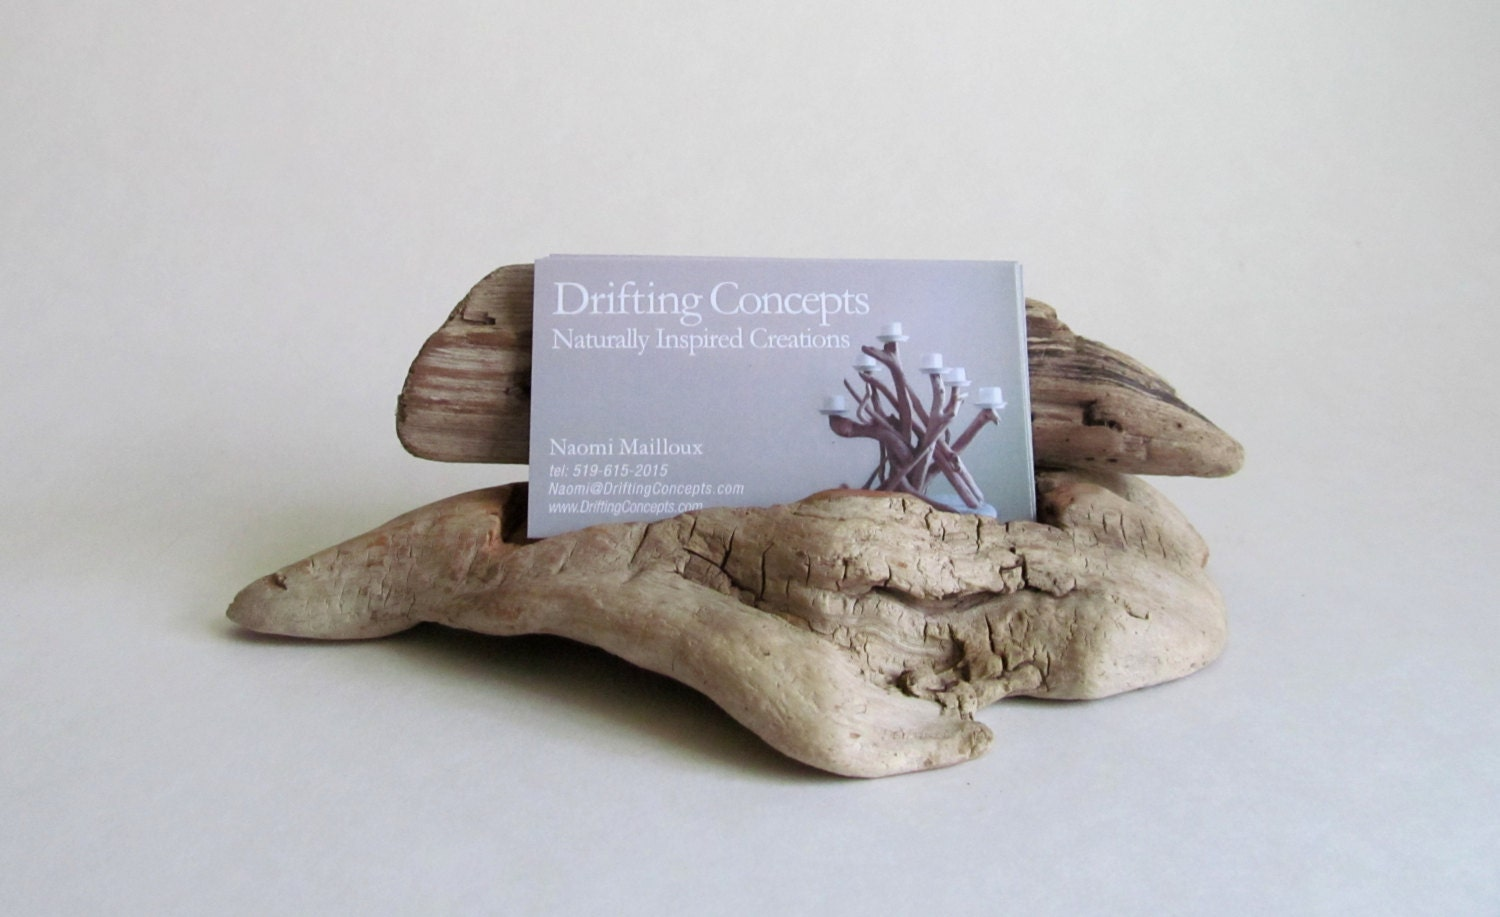 Carved Driftwood Business Card Holder Driftwood Business Card